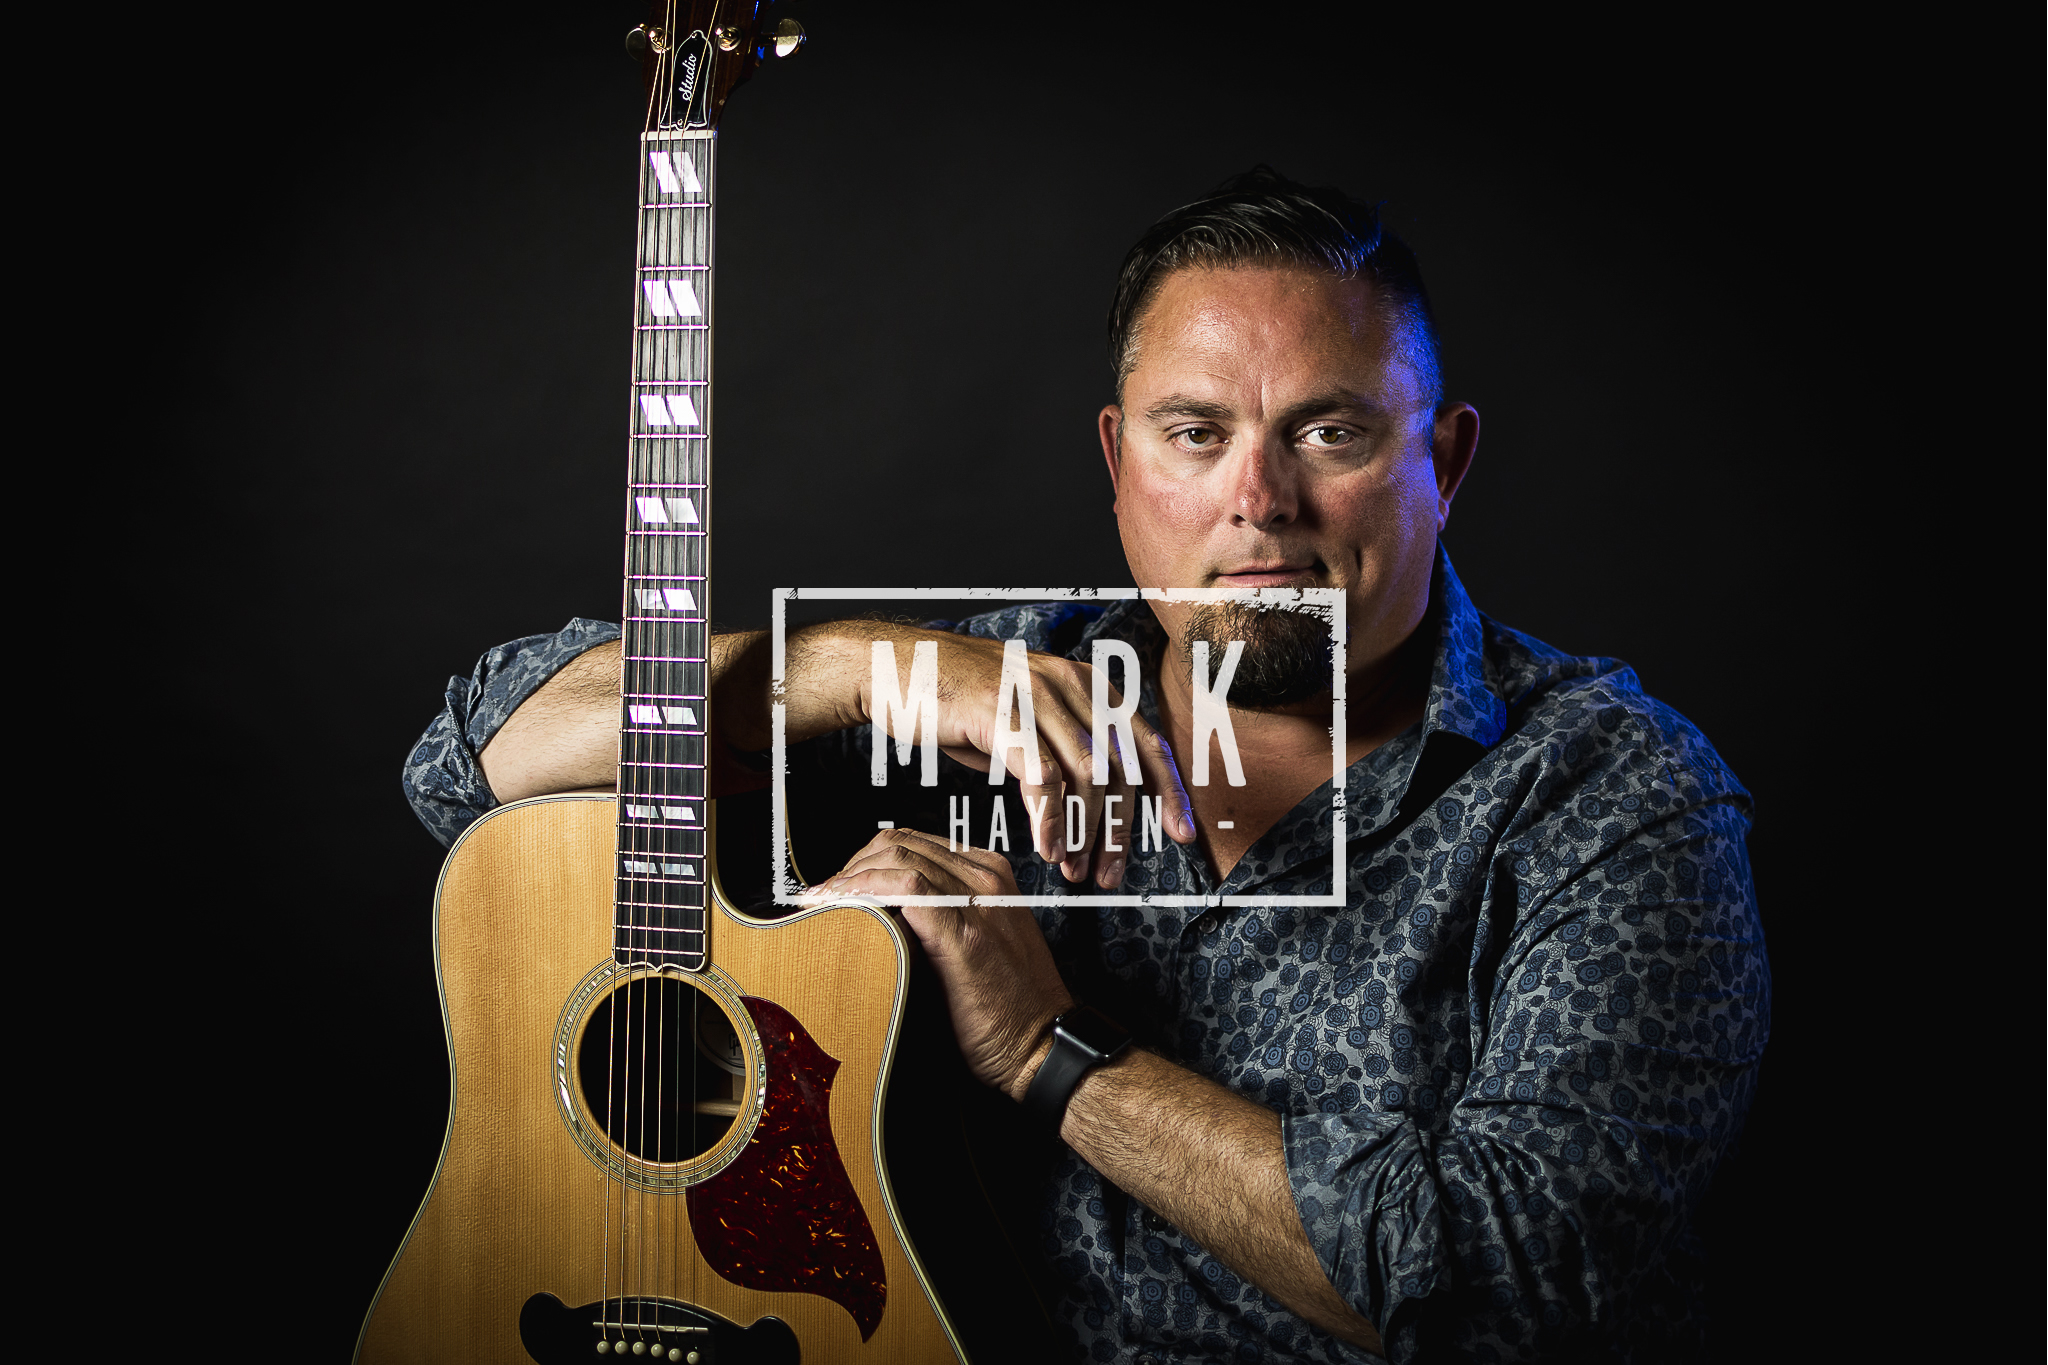 Mark Hayden Music